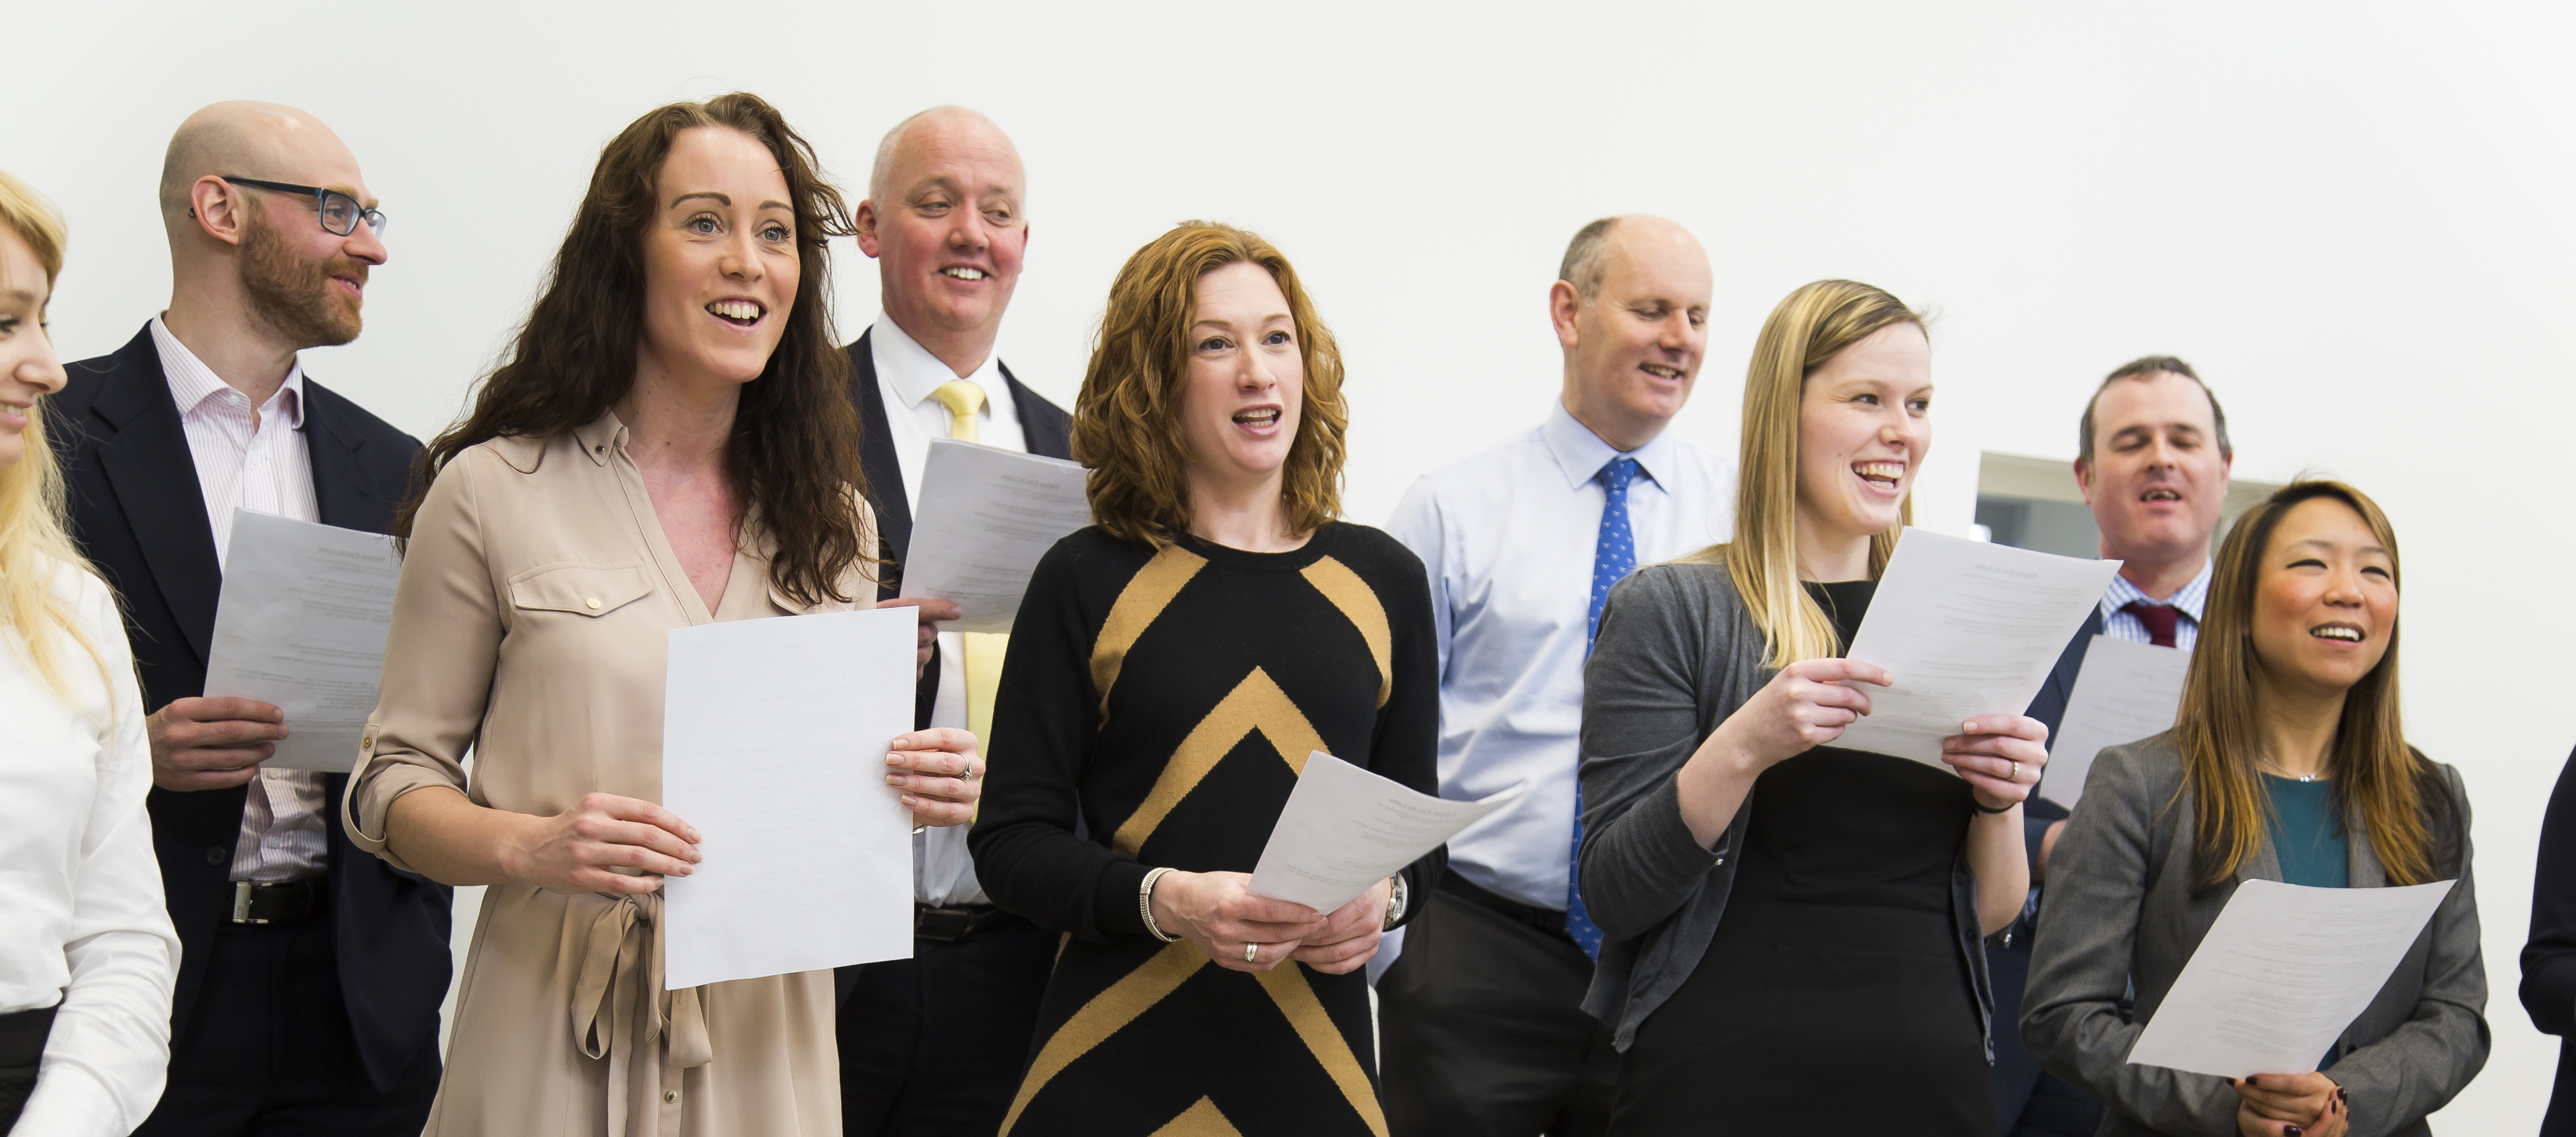 Wellington Place Workplace Choir singing